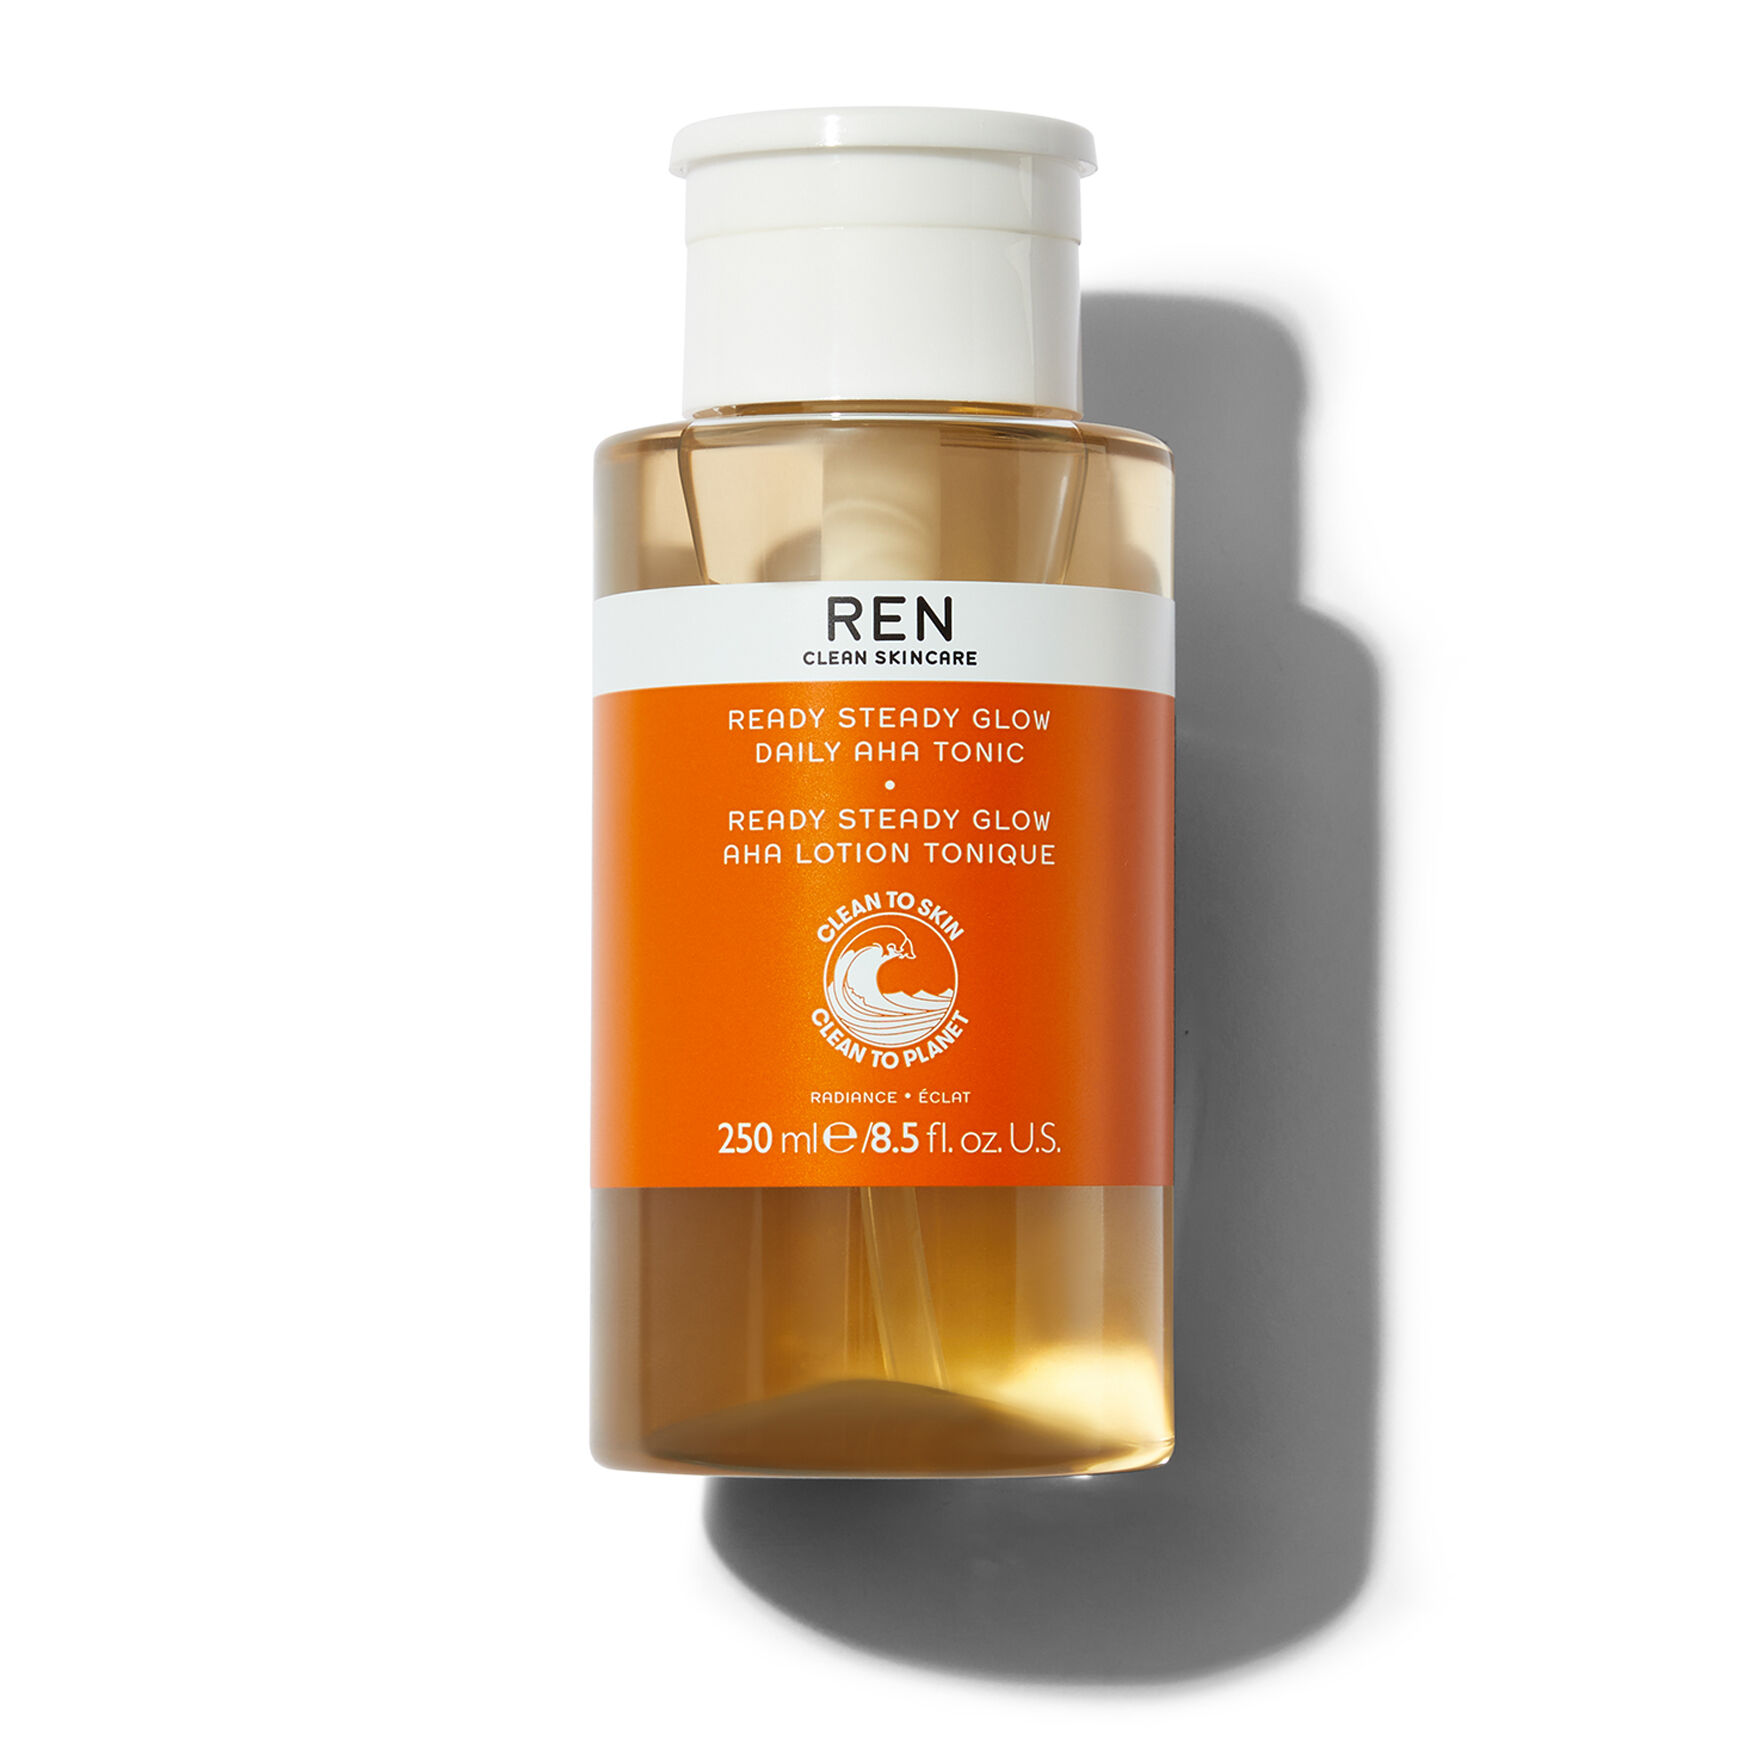 Ren Clean Skincare - Ready Steady Glow Daily AHA Tonic by Ren Clean Skincare